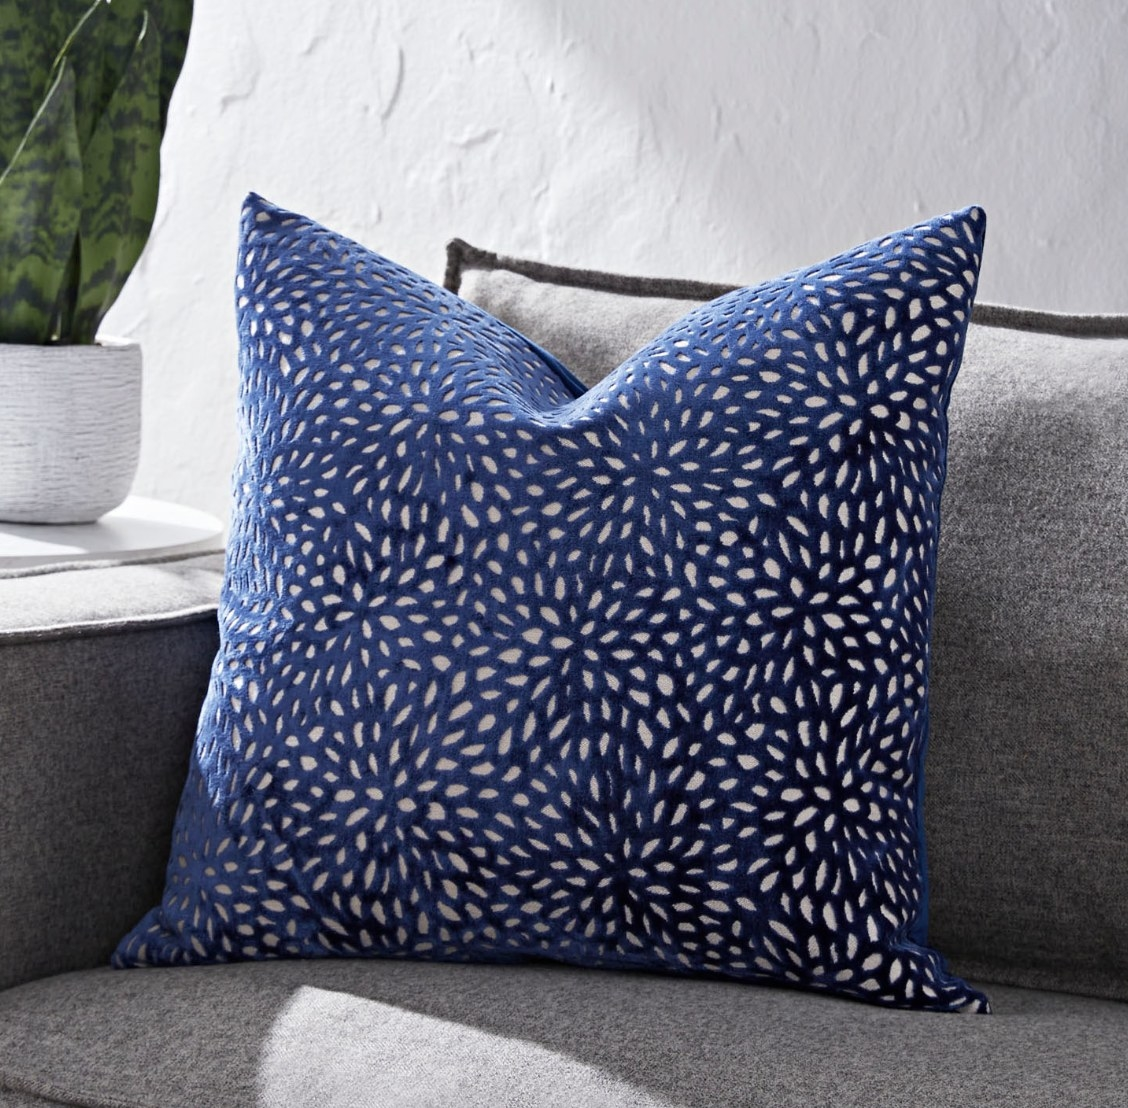 The blue velvet pillow has white cutouts that look like blooming flowers